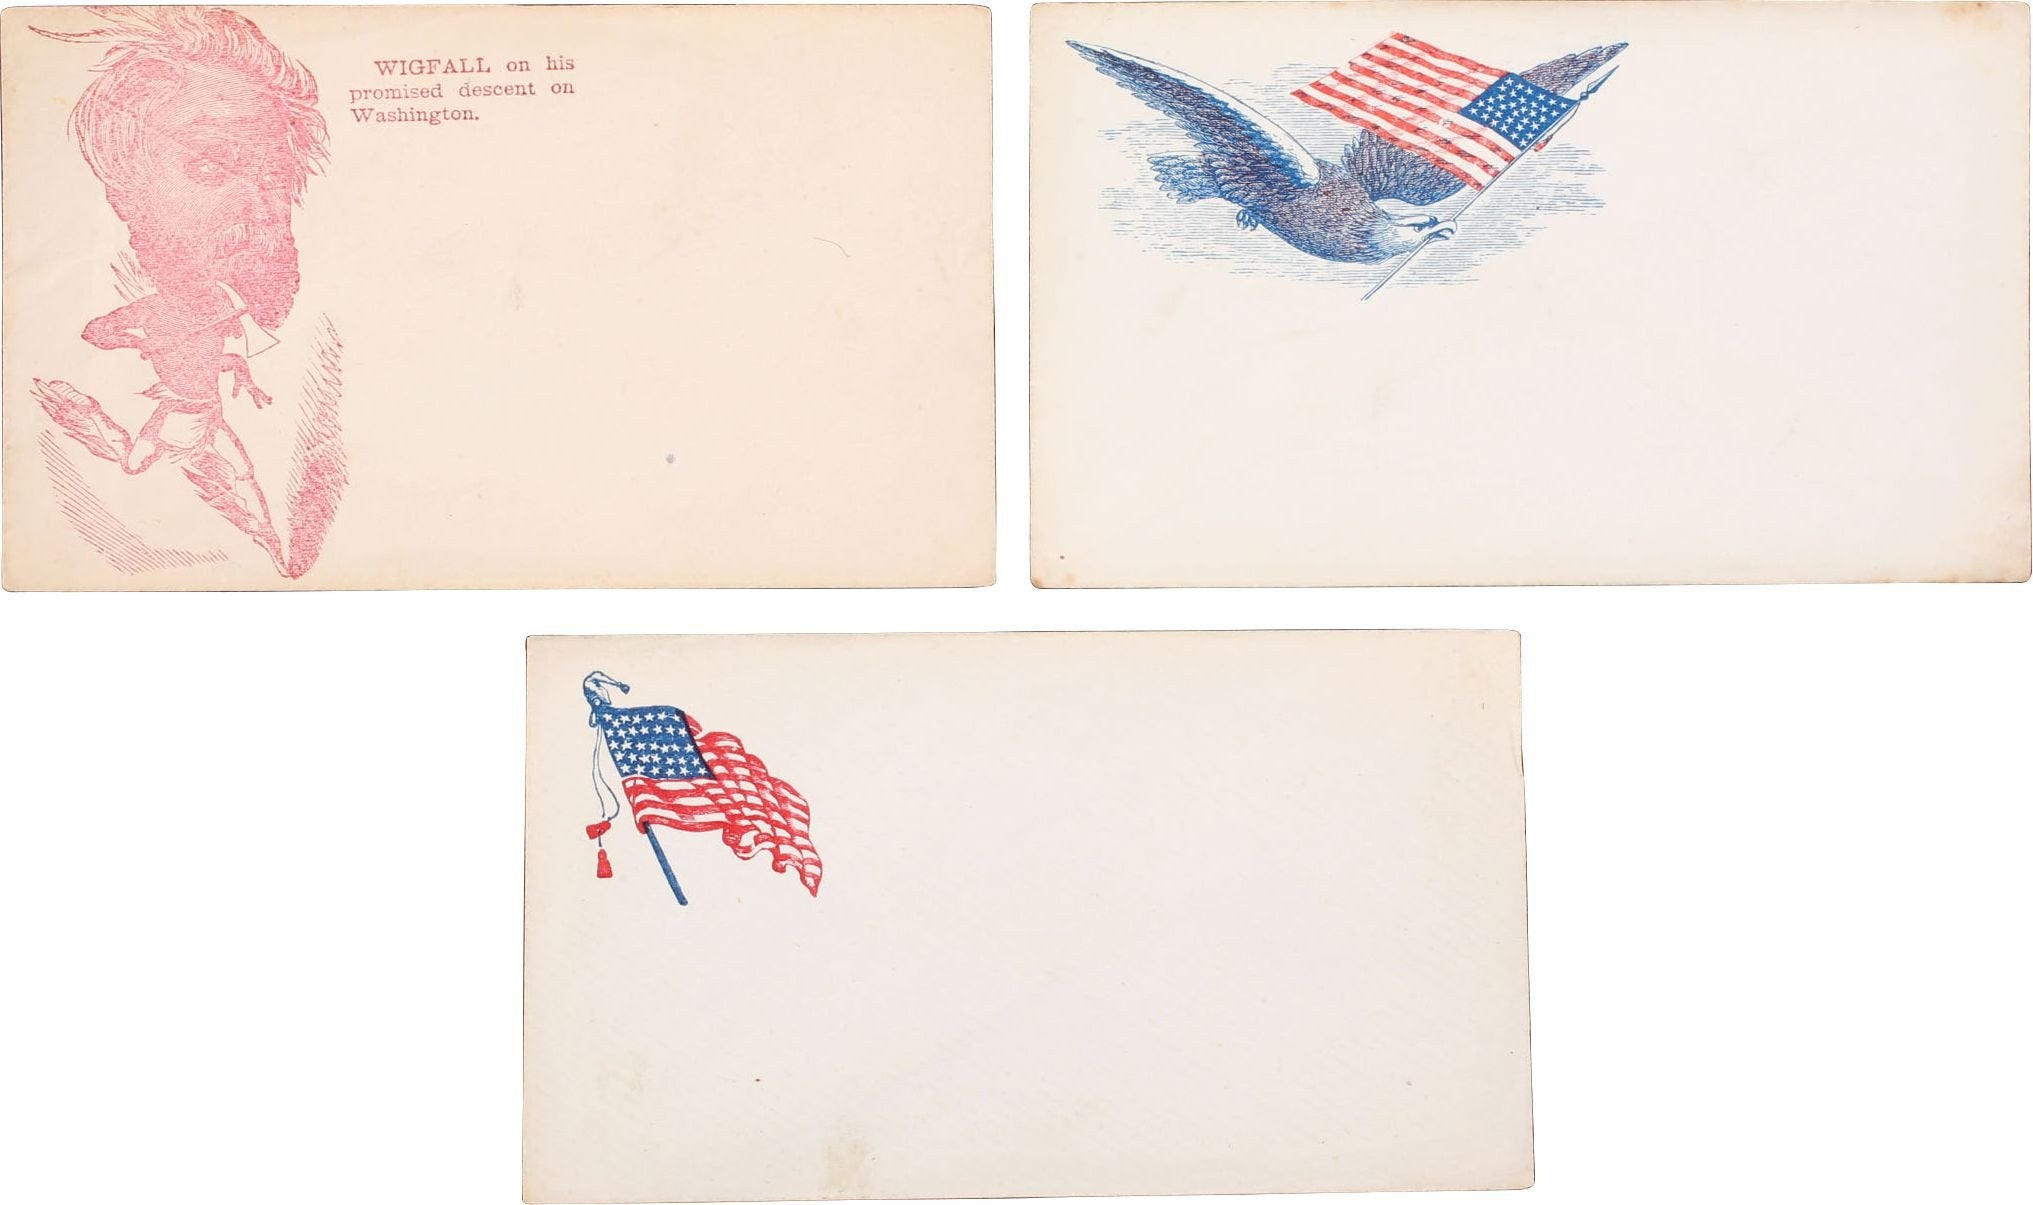 CIVIL WAR PATRIOTIC ENVELOPES - Fagan Arms